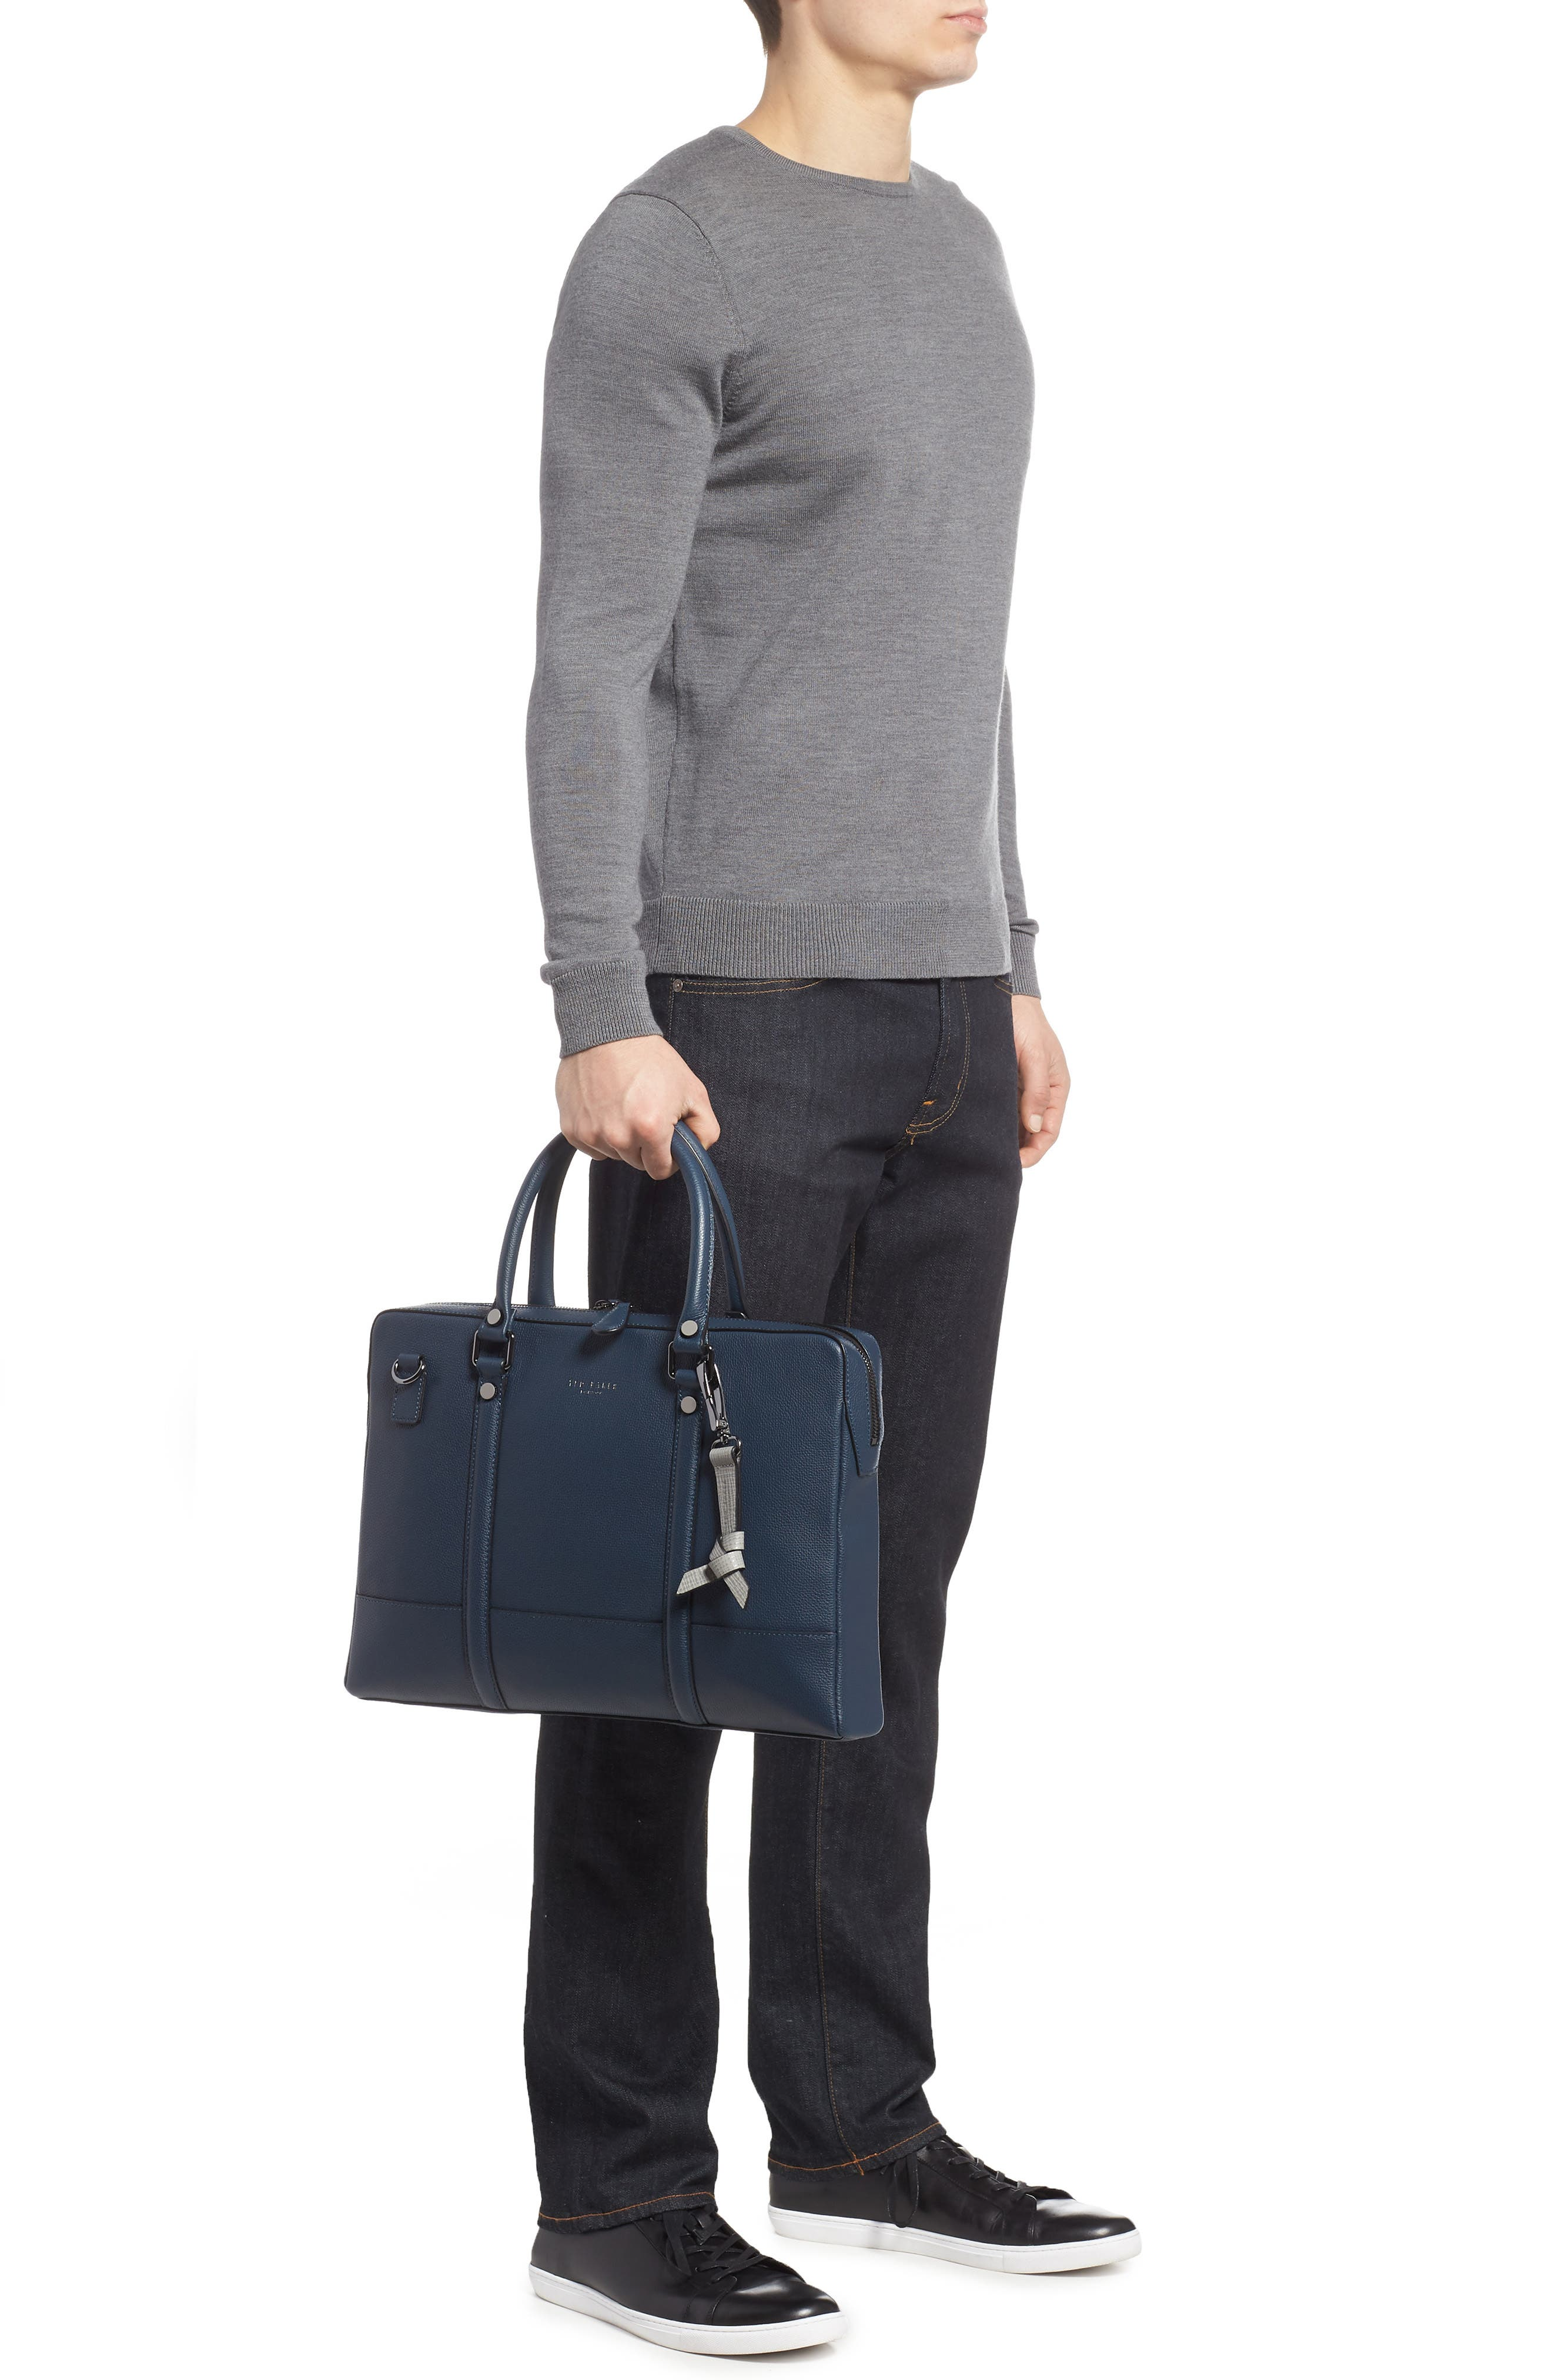 AWOL Leather Document Bag,                             Alternate thumbnail 2, color,                             NAVY